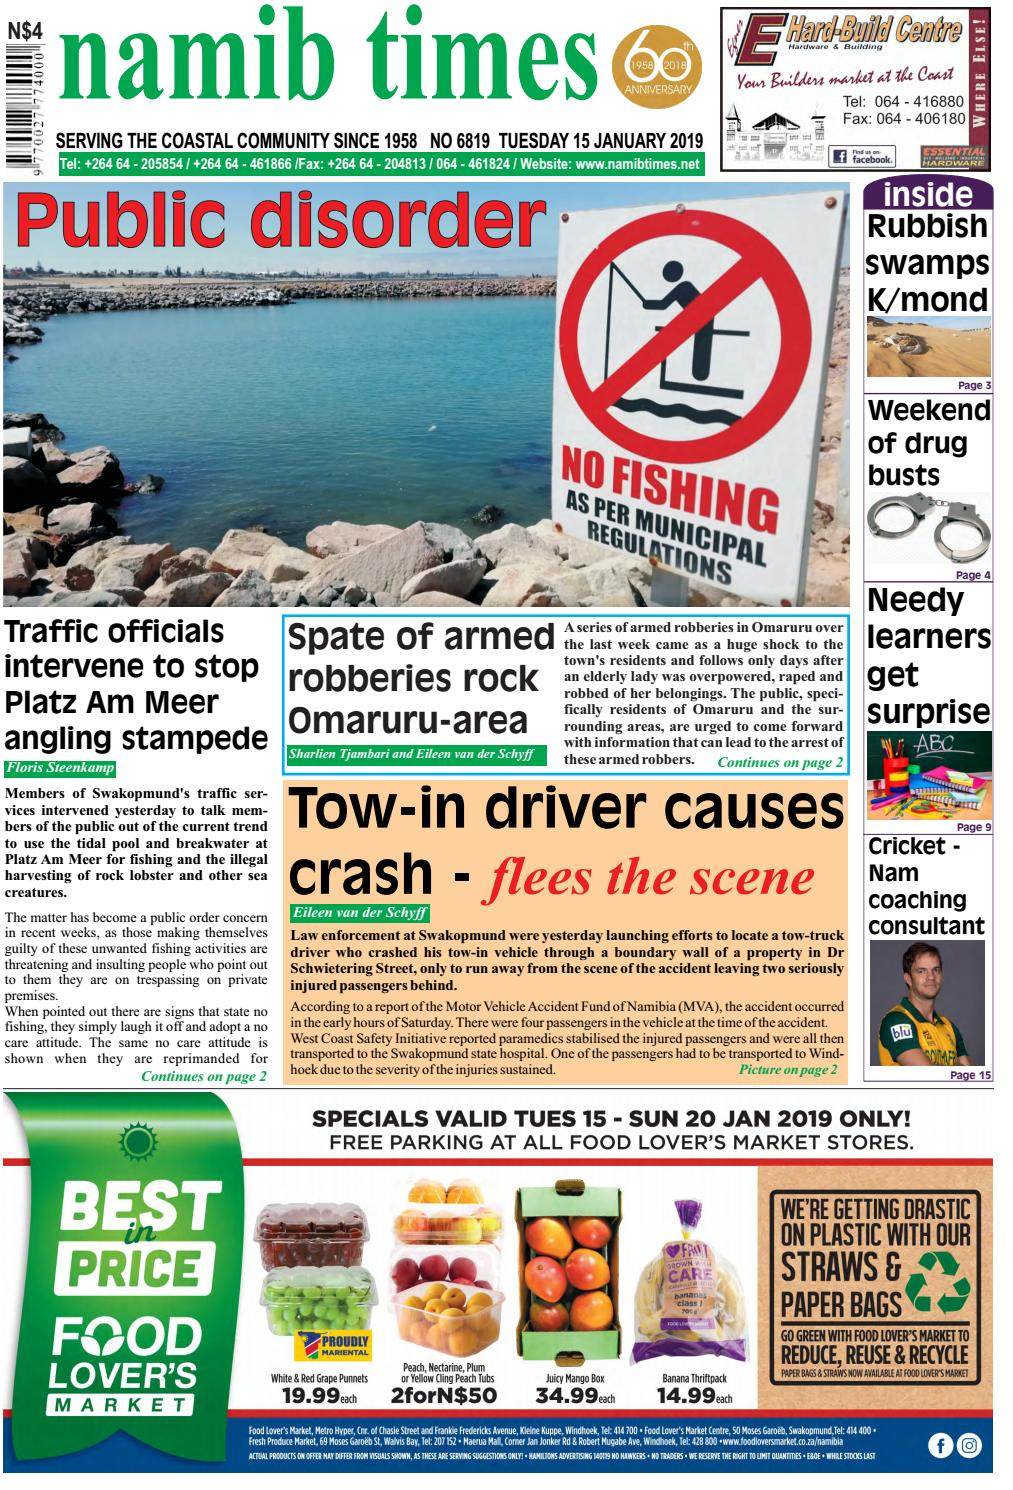 15 jan namib times e-edition by Namib Times Virtual - issuu